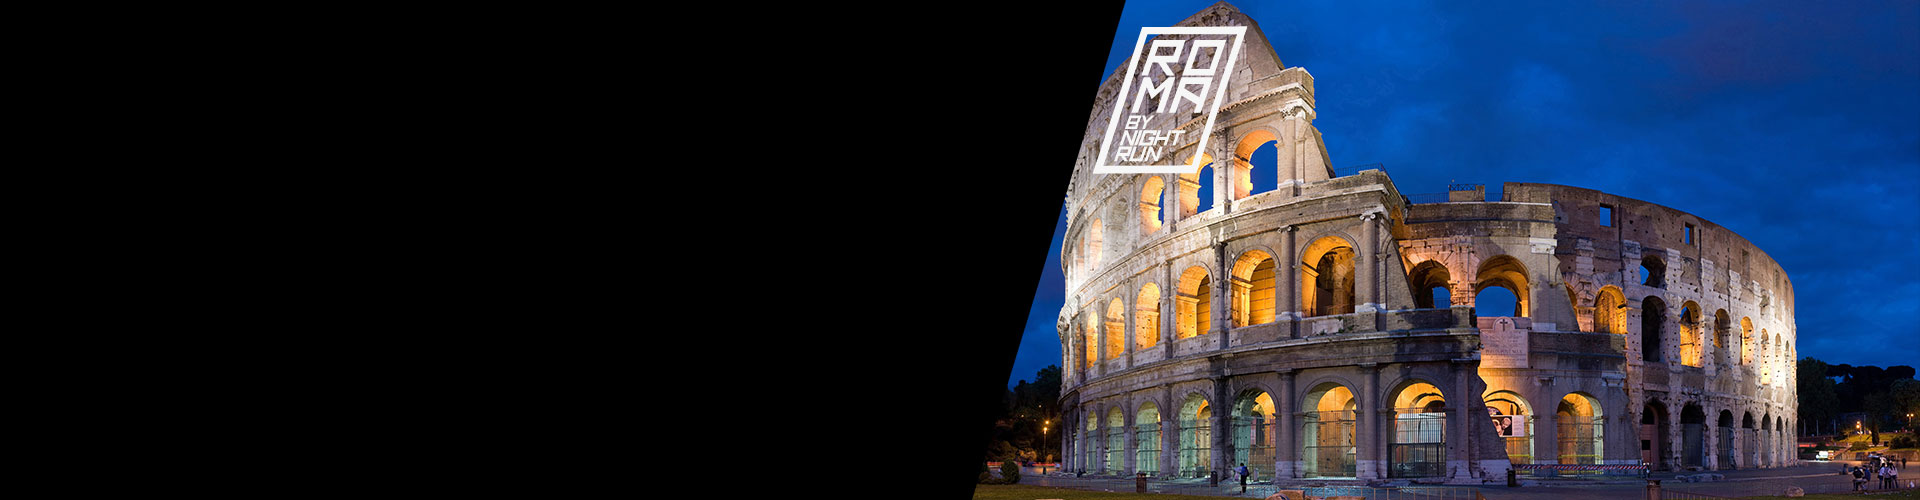 ROMA BY NIGHT RUN6 SettembreRoma